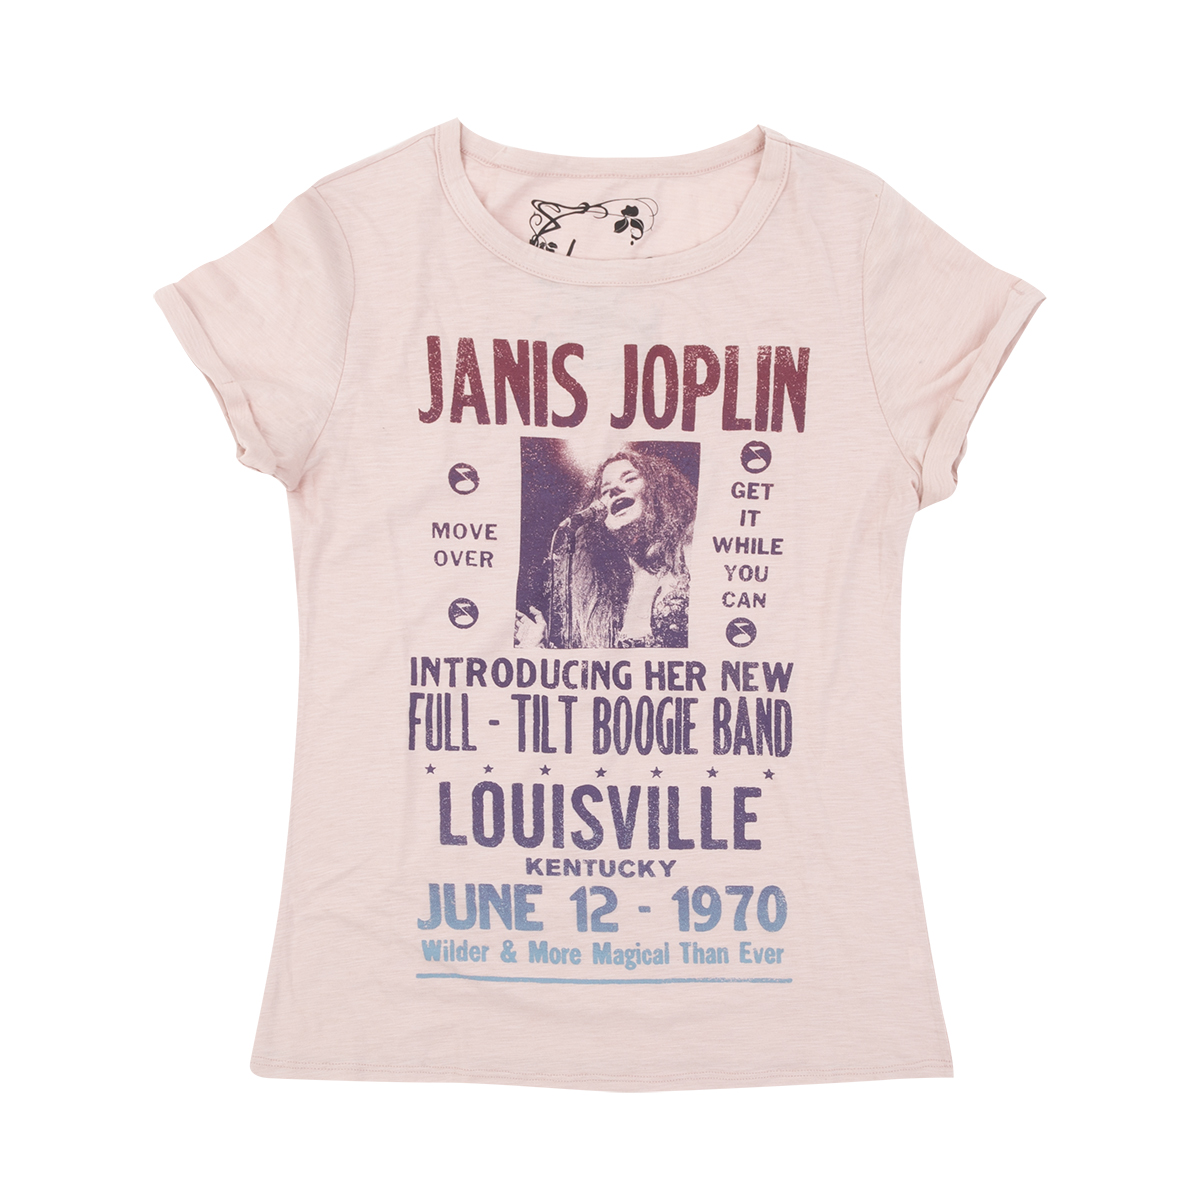 Janis Joplin and the Full Tilt Boogie Band Tour Ladies T-shirt